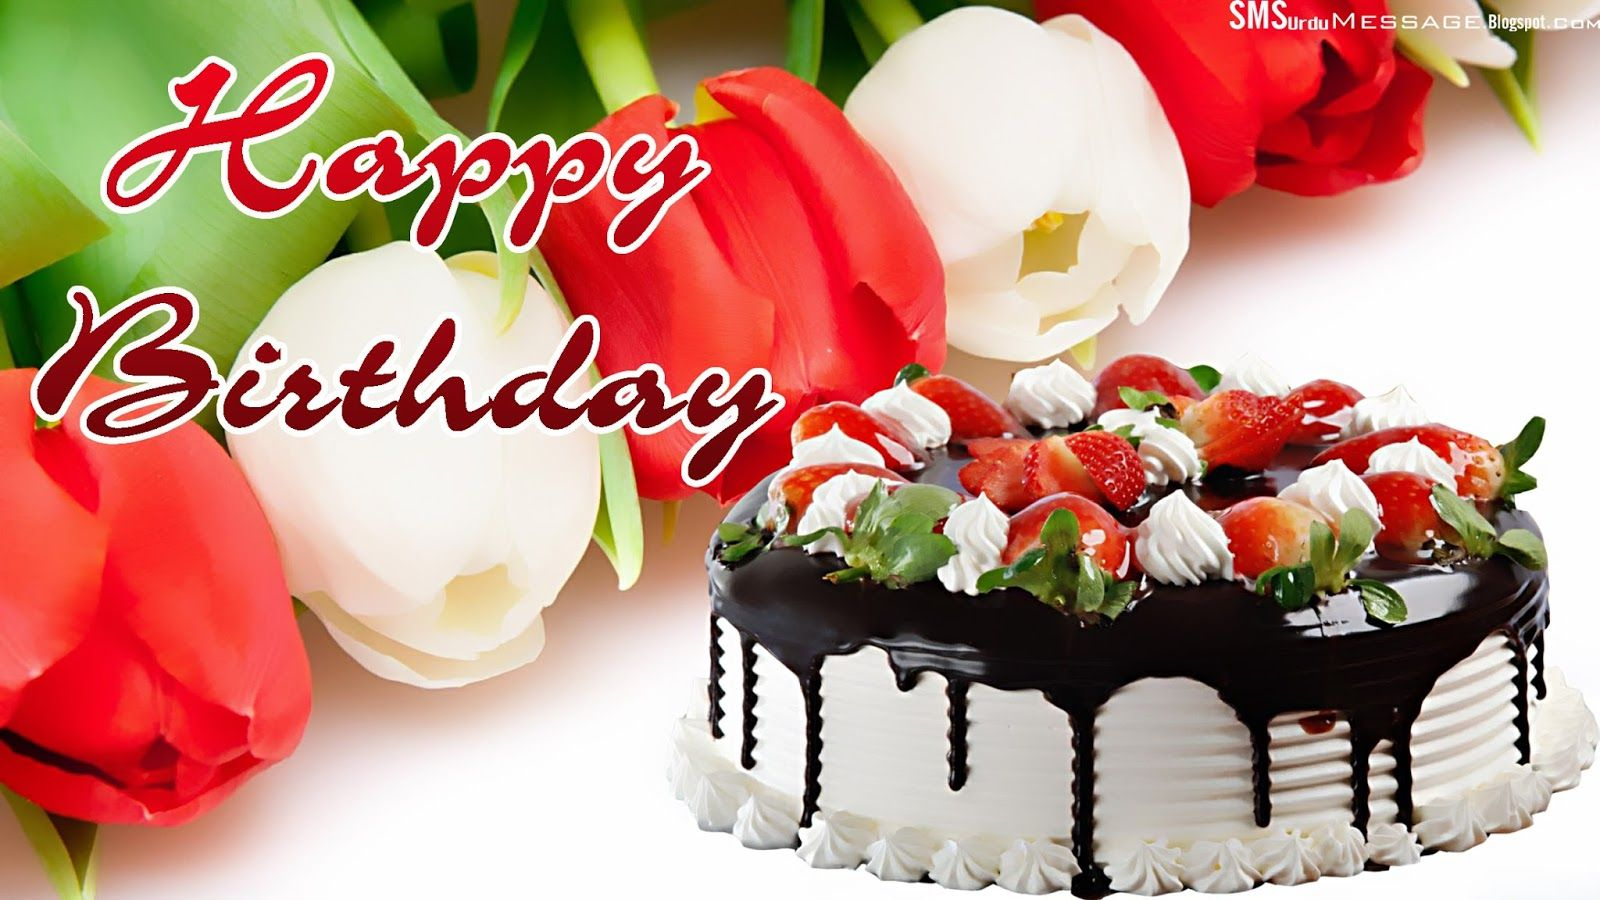 Happy birthday images hd 1024 x 768 google search happy happy birthday images hd 1024 x 768 google search kristyandbryce Images